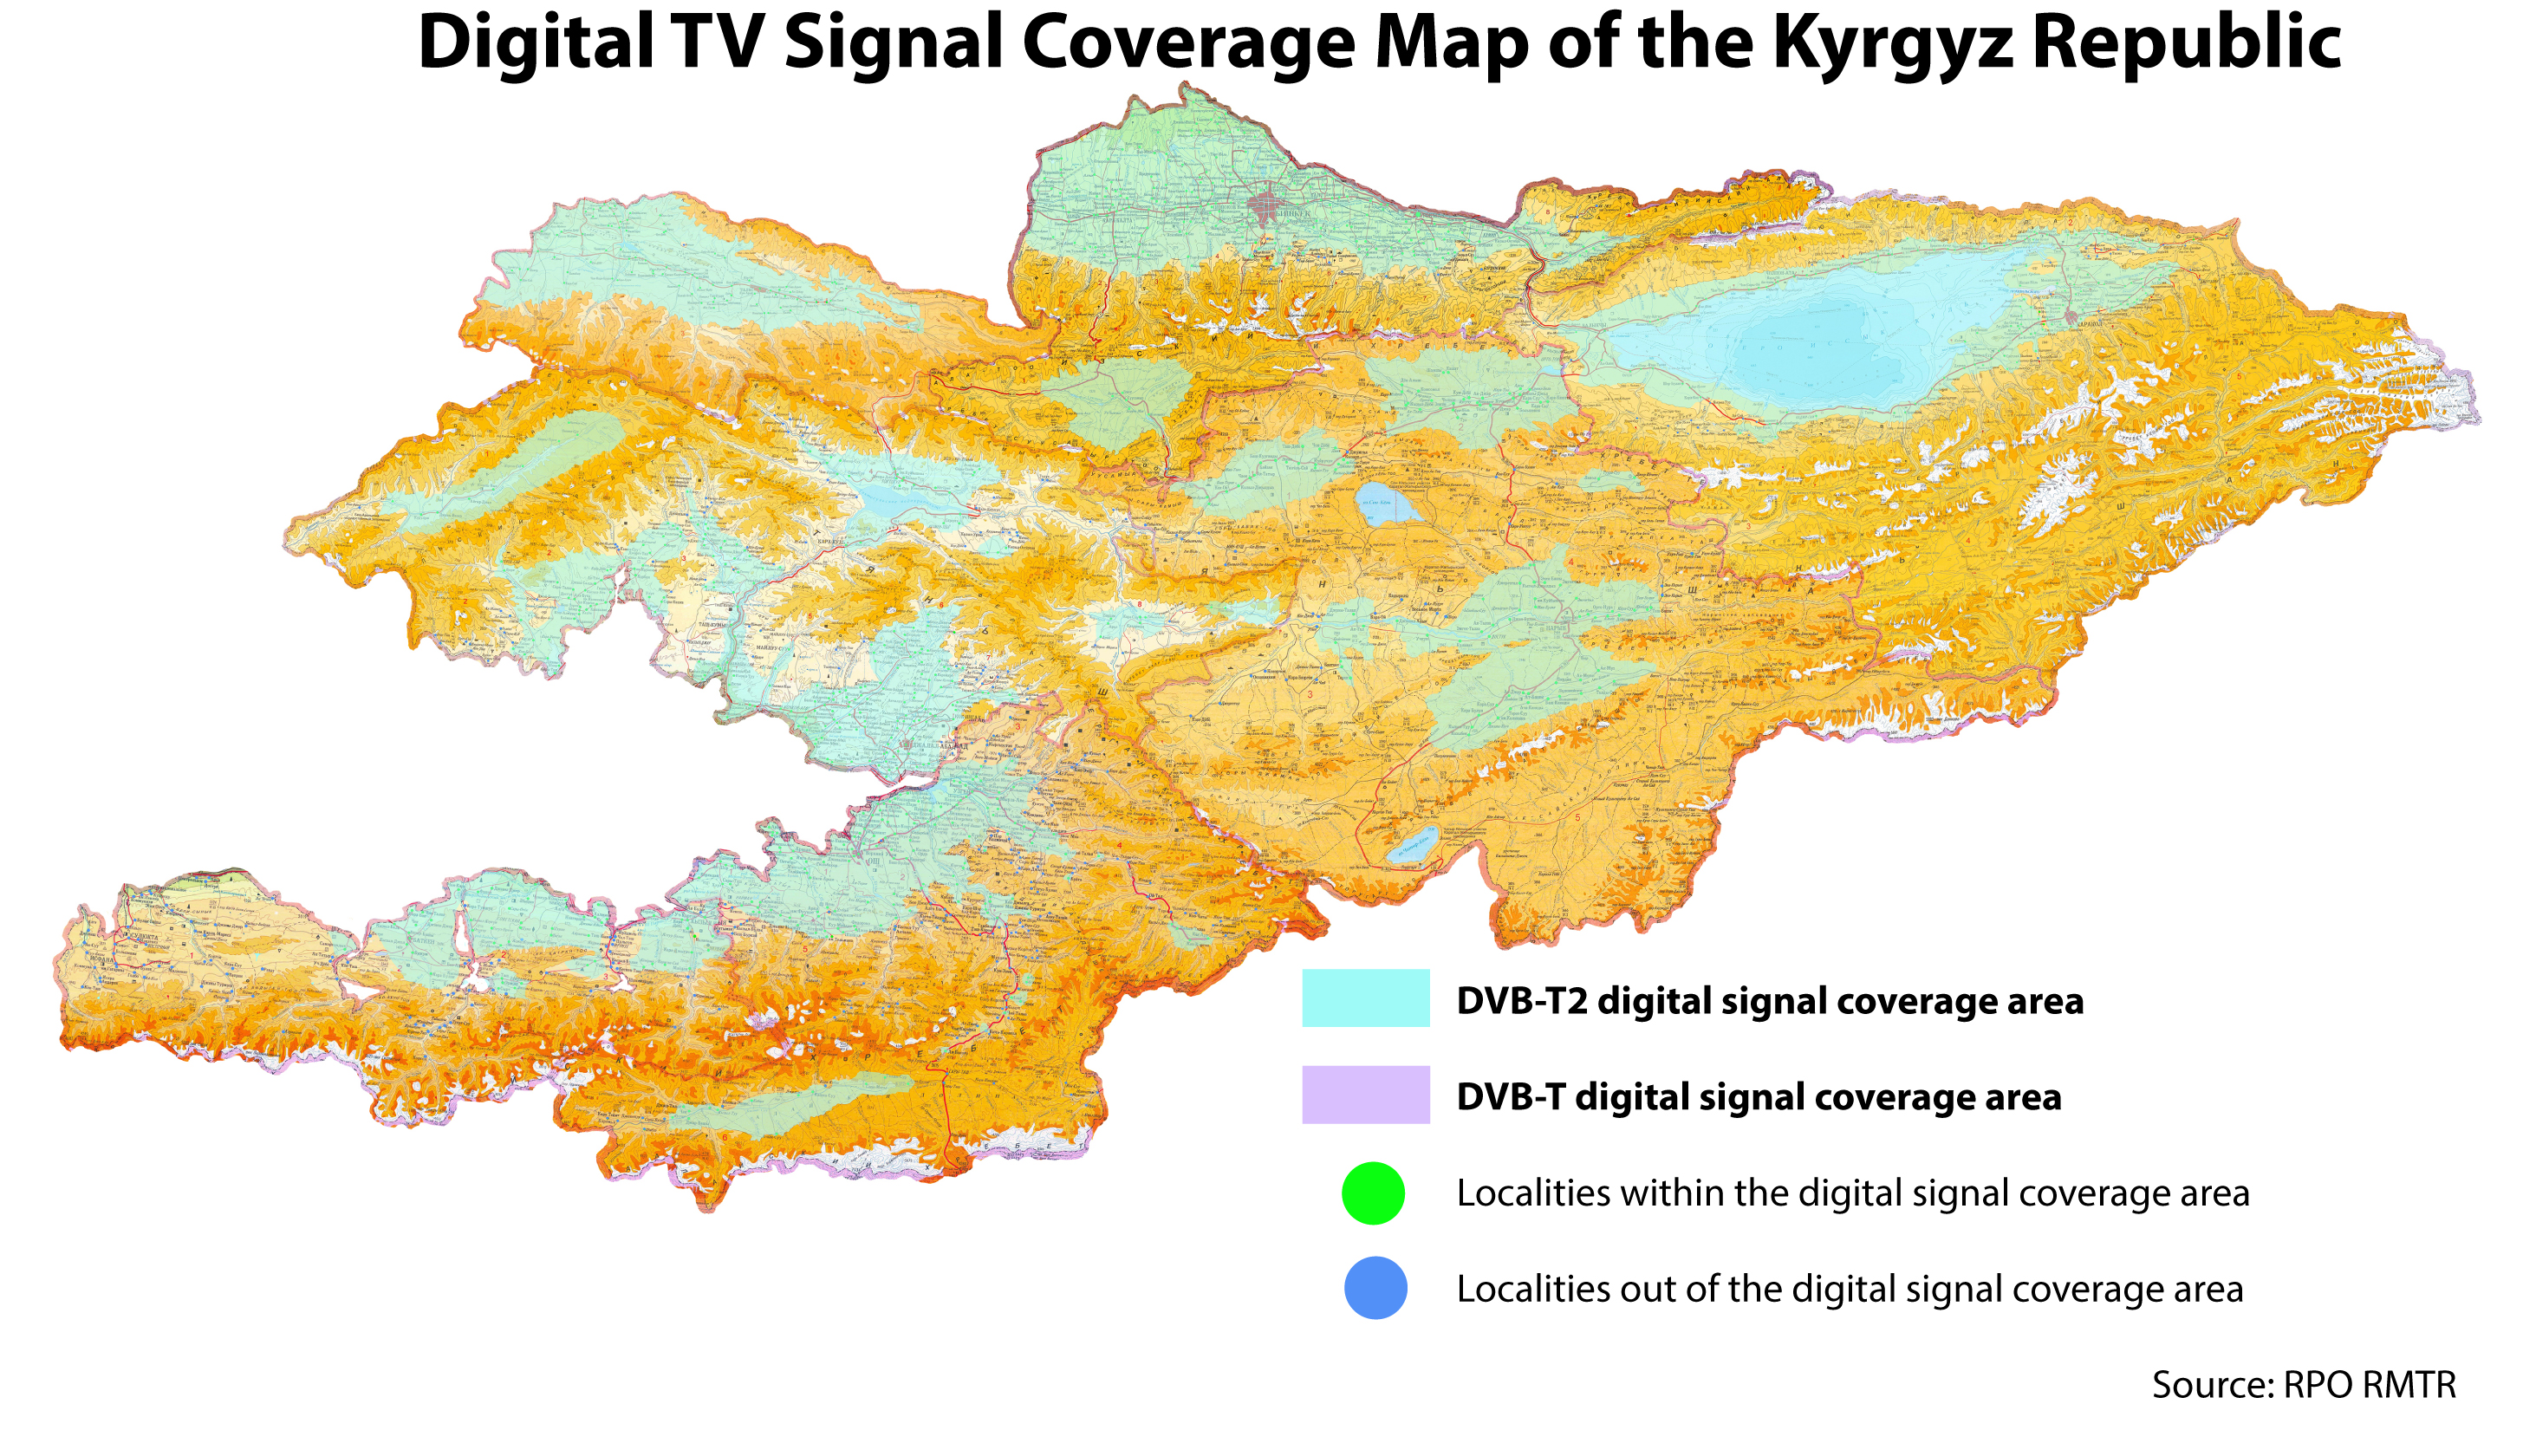 Kyrgyzstan switches tv broadcasting to digital format mediasat english communications agency kyrgyztelecom and the republican production association of radio relay backbones of television and radio broadcasting rpo rmtr gumiabroncs Image collections